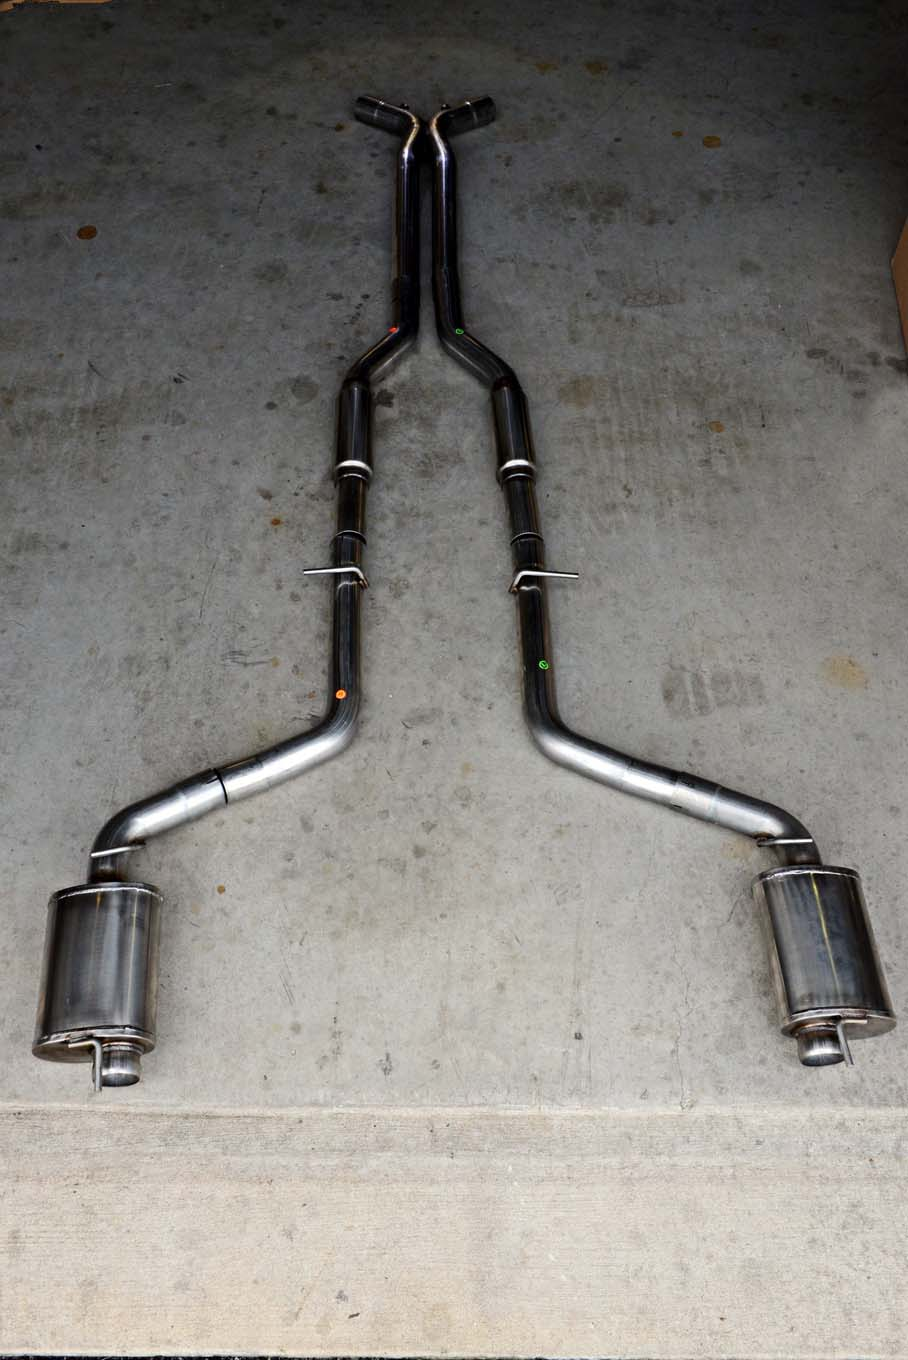 The American Racing Headers (ARH) exhaust system is made from 304-series stainless steel. The mufflers are American Racing Header's own performance mufflers, which are designed to allow for a crisp, throaty sound with the least restriction possible.